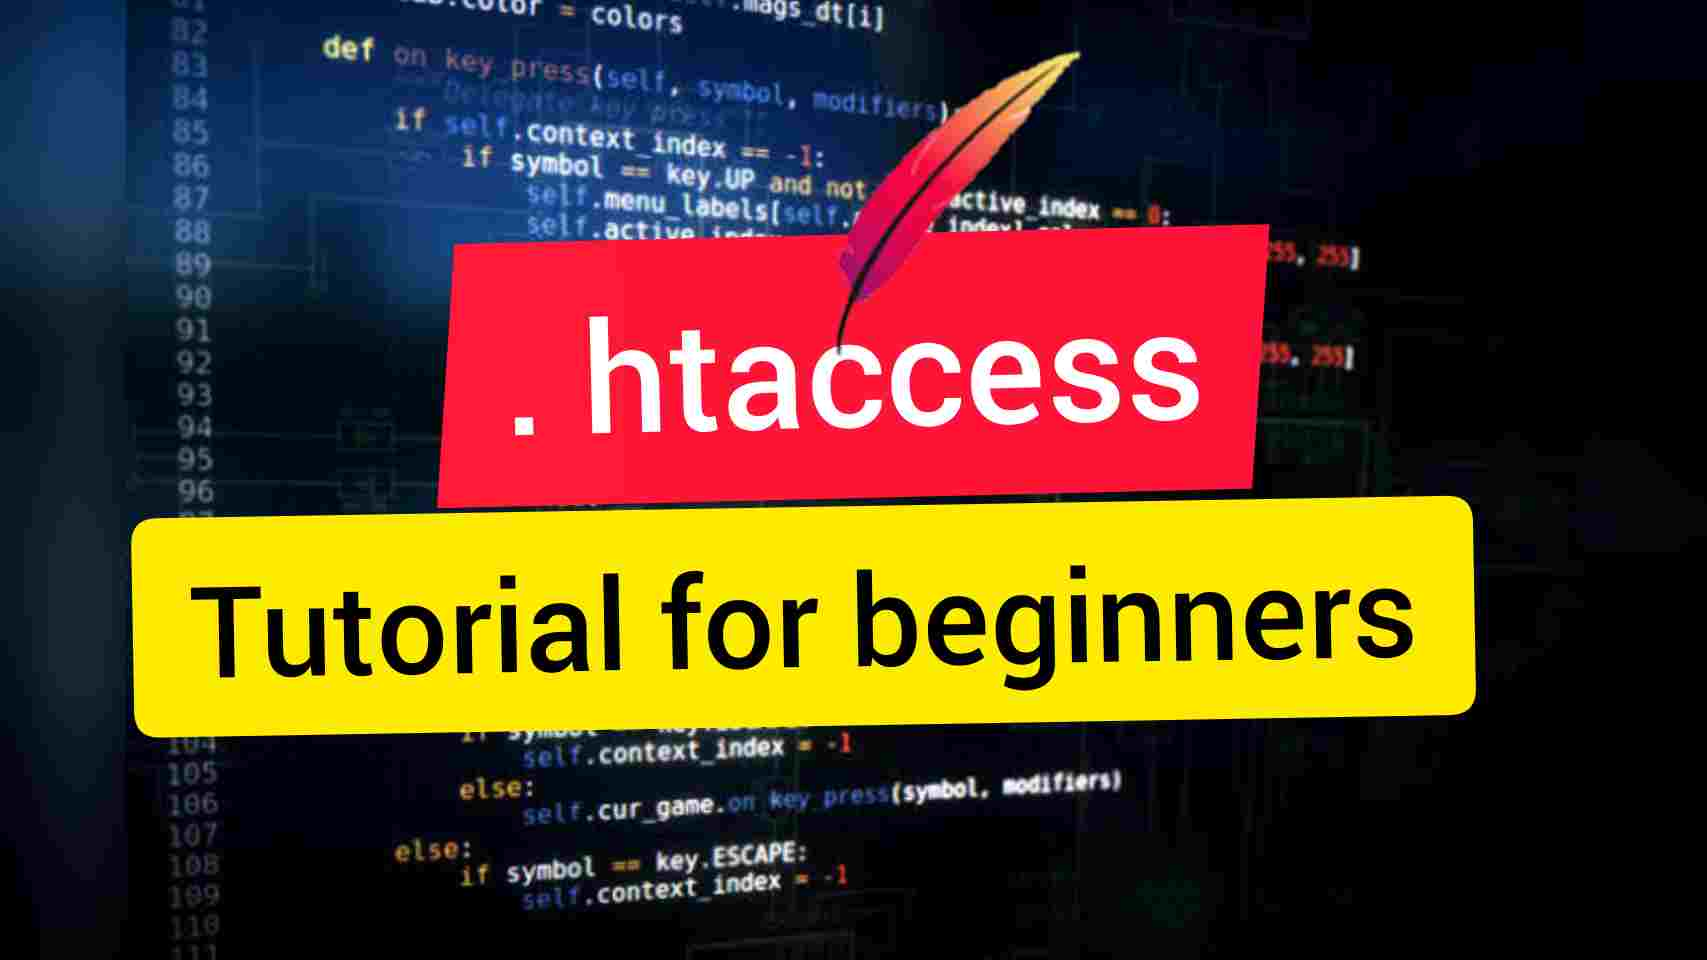 htaccess tutorial for beginners